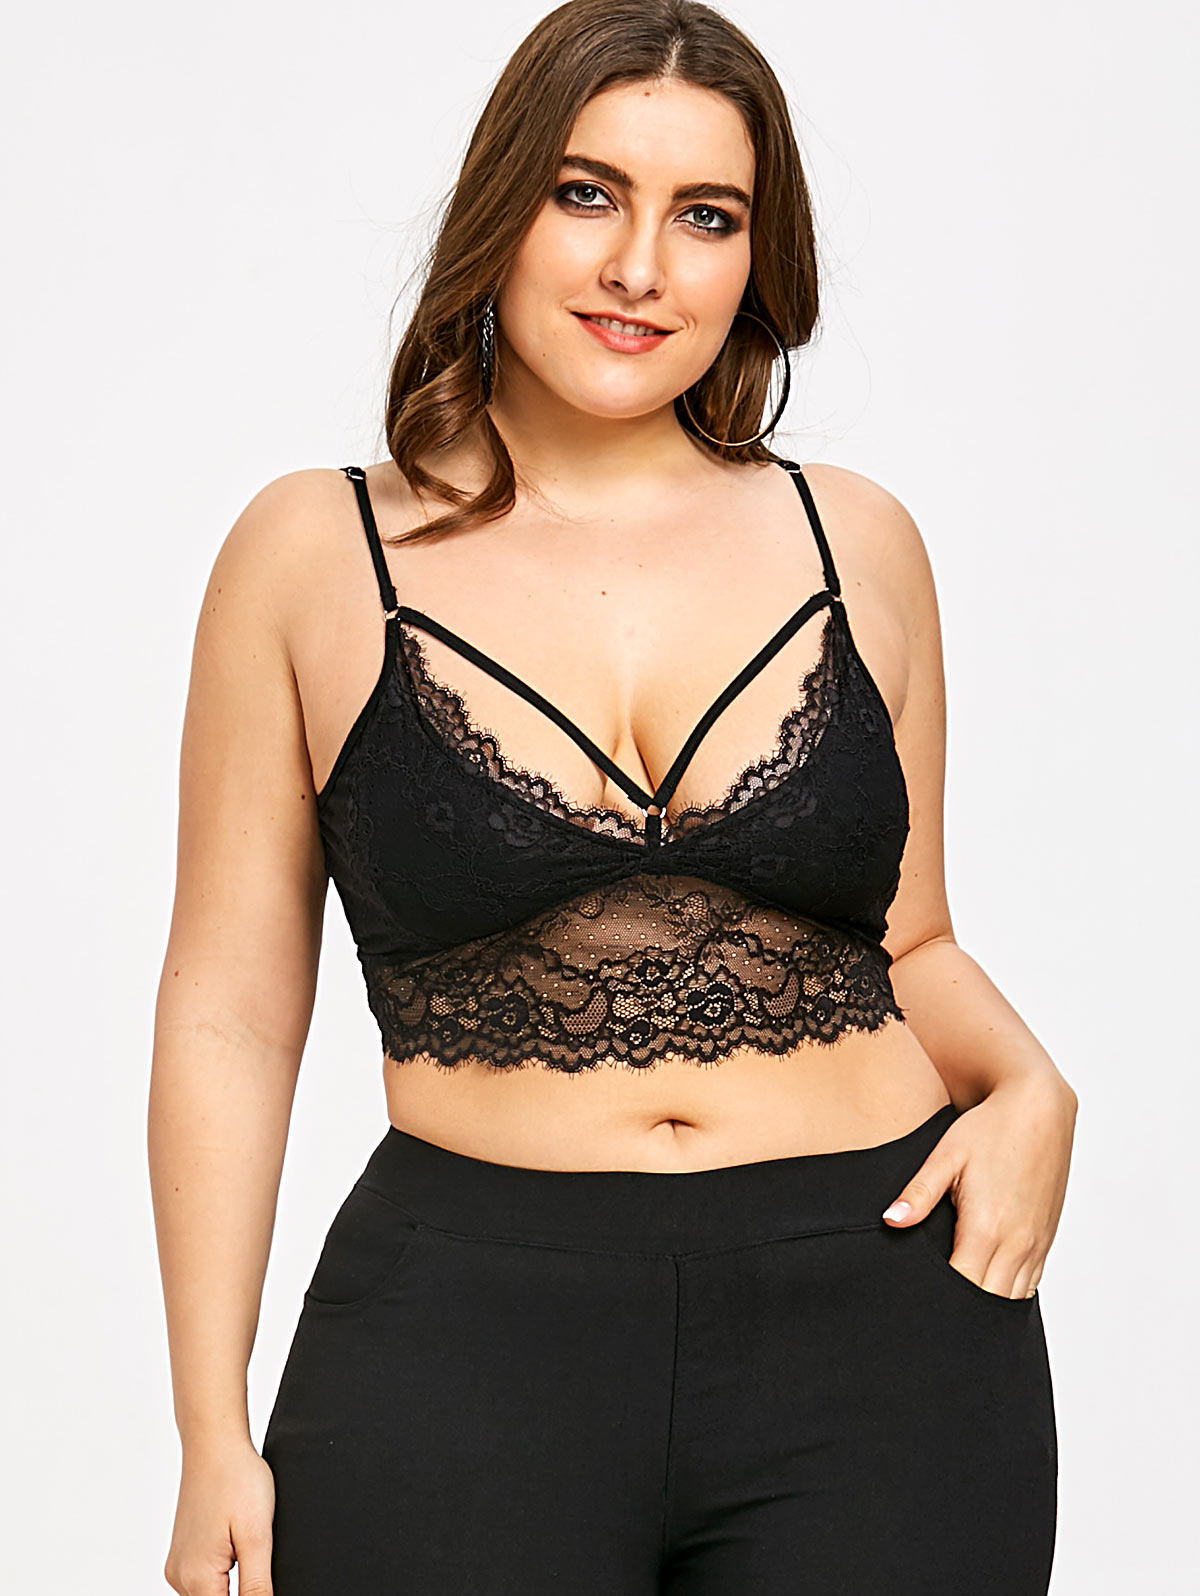 2865708740 Gamiss Plus Size 5XL Black Lace Trim Strappy Crop Top Camisole Sexy Bralette  Scalloped Edge Sheer Camisole Women Summer Top Cami